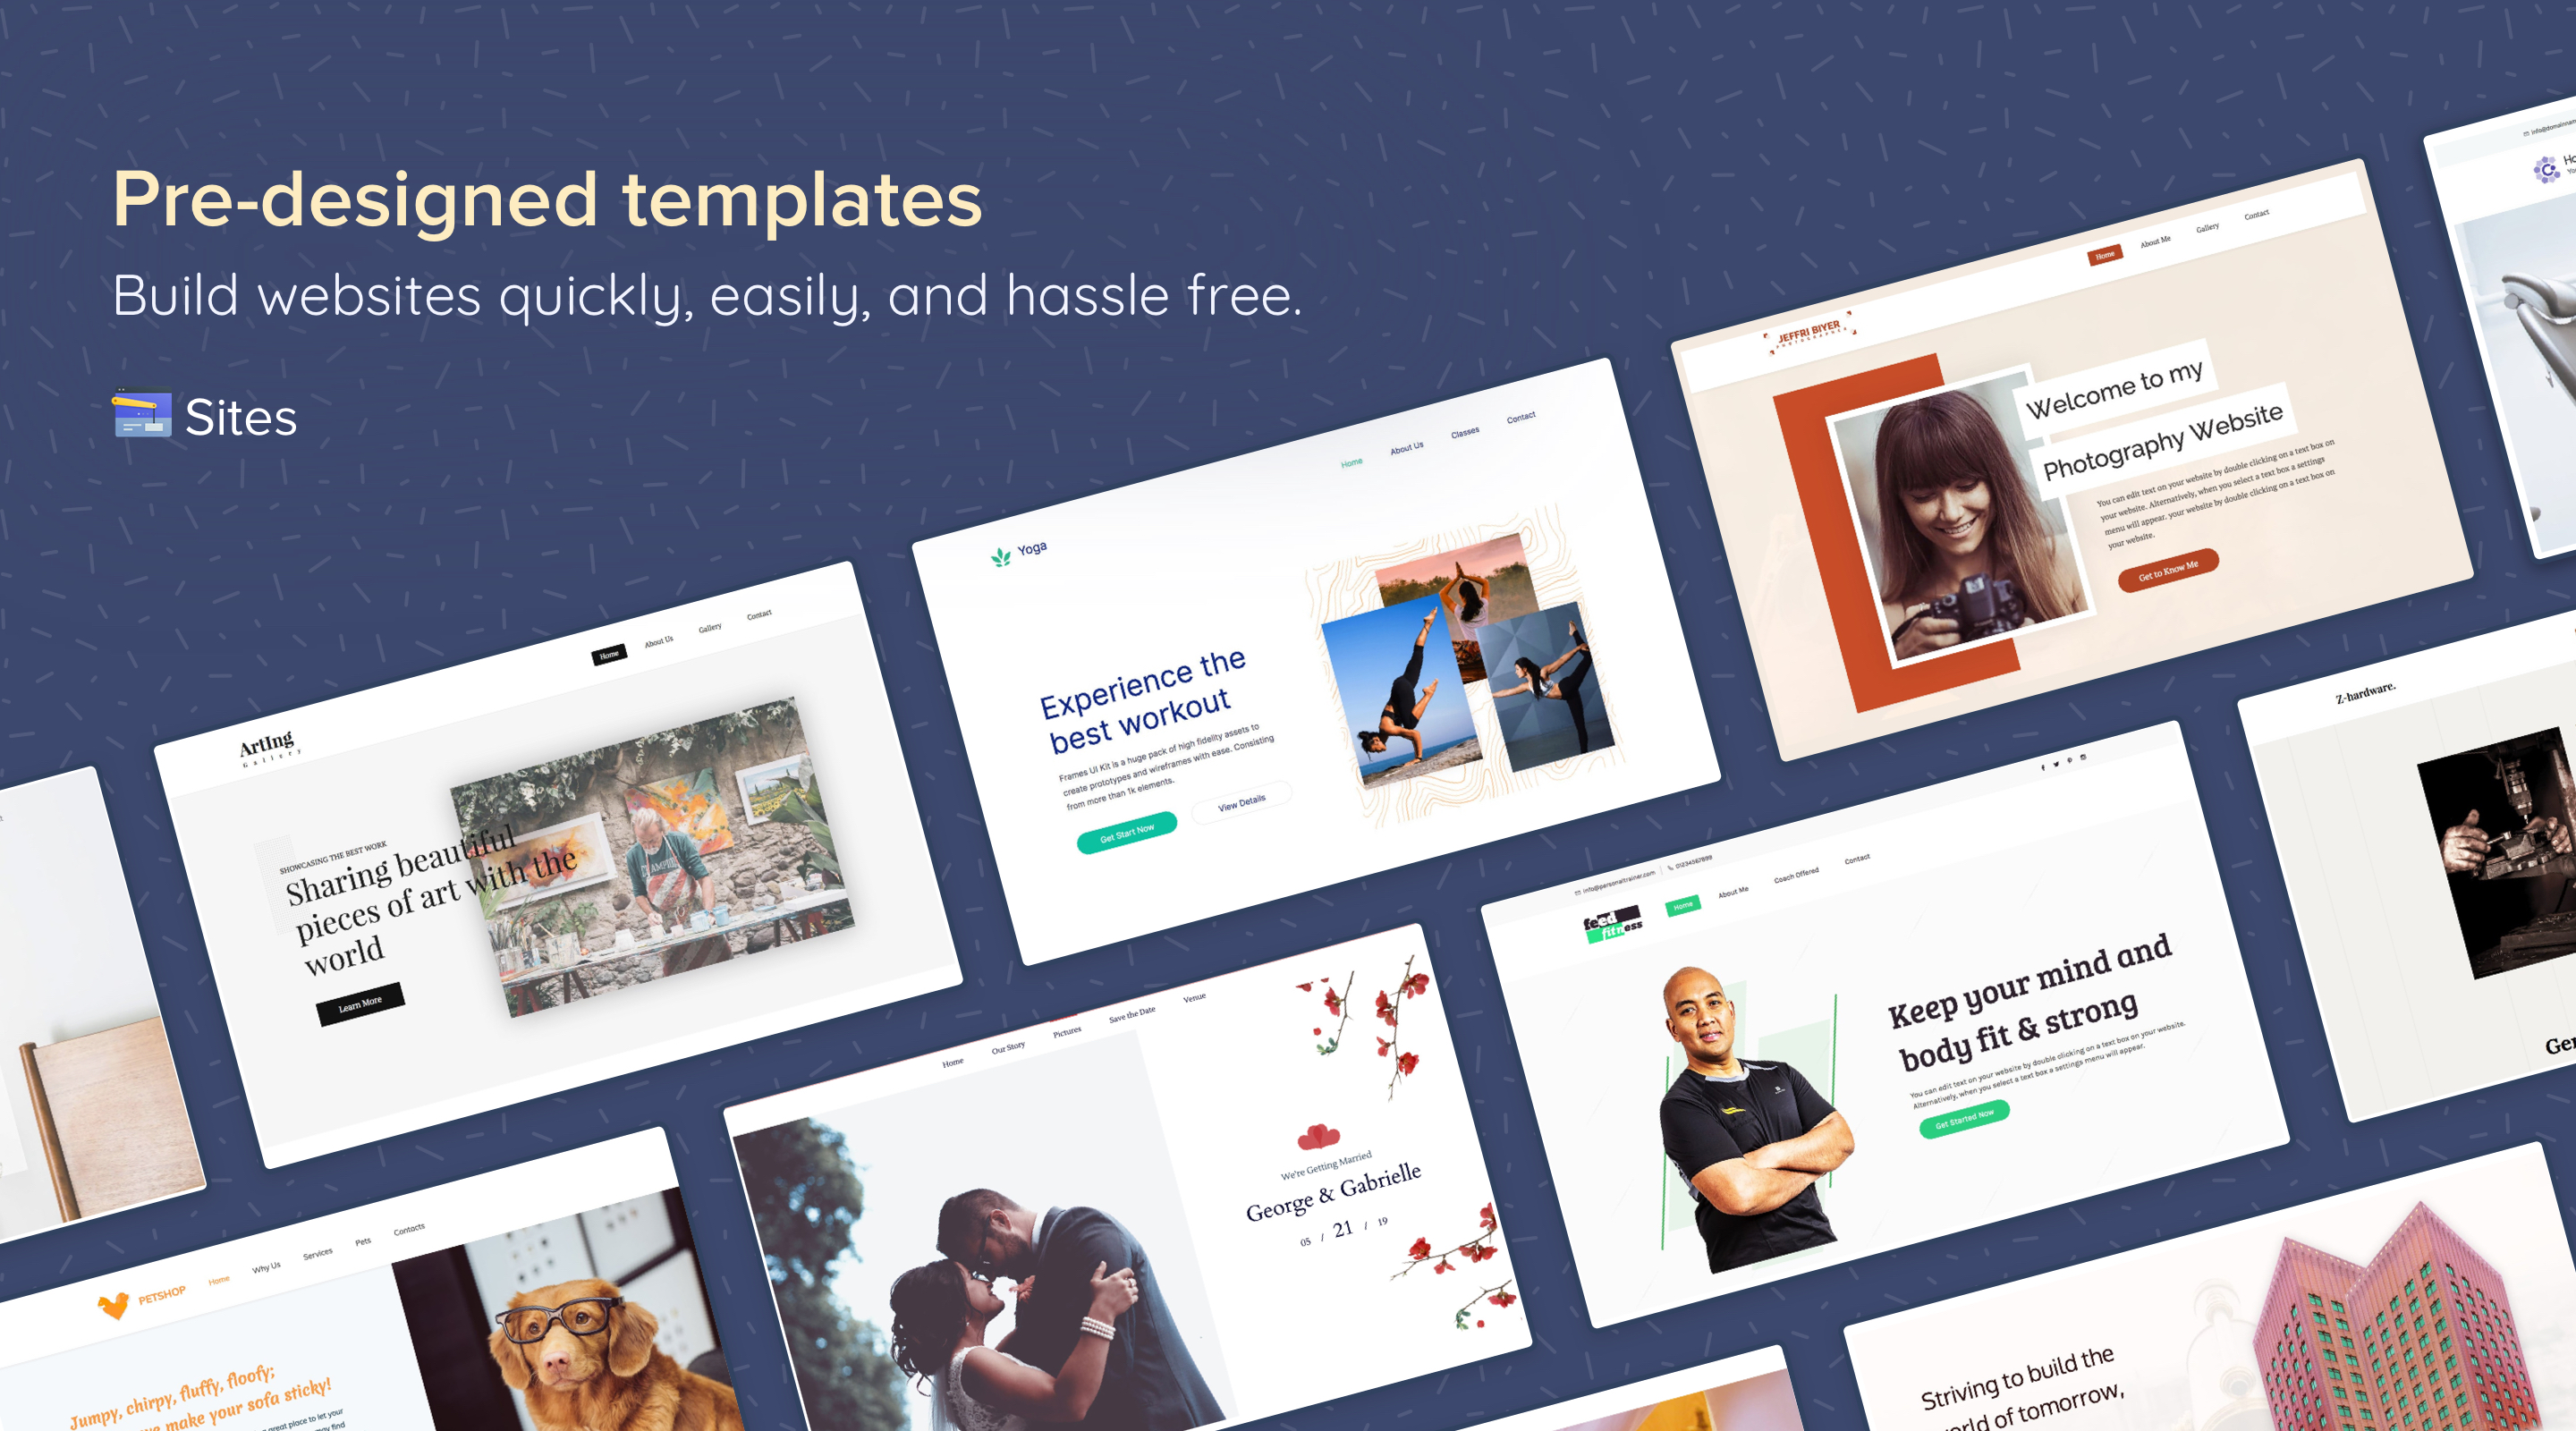 Professionally designed templates, new from Zoho Sites